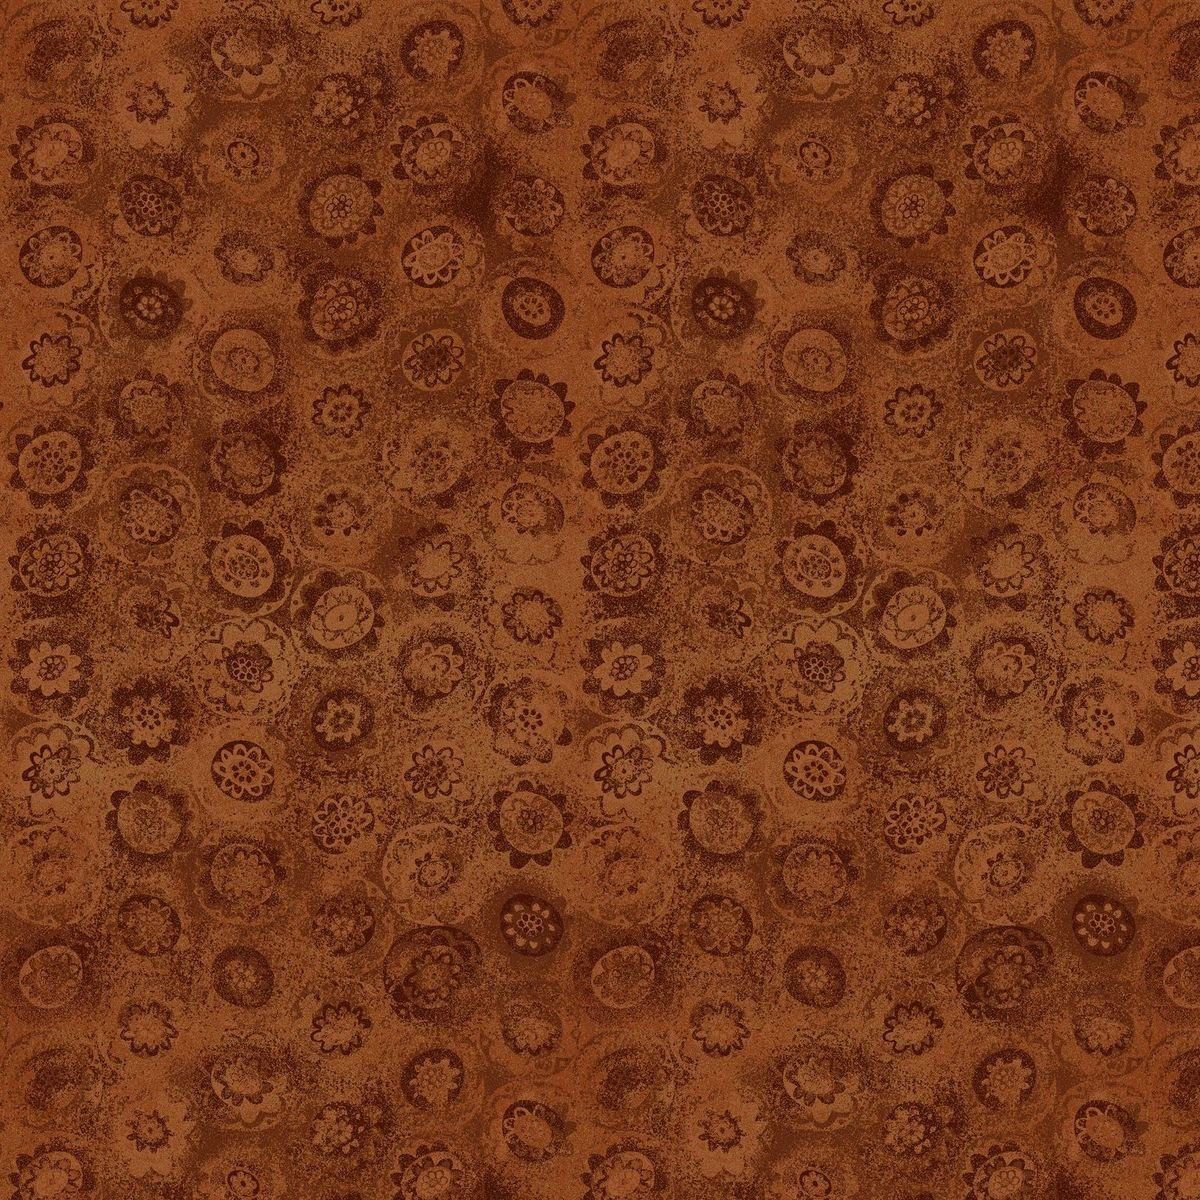 HG-Blessings of Home 2686-35 Orange - Monotone Sunflowers